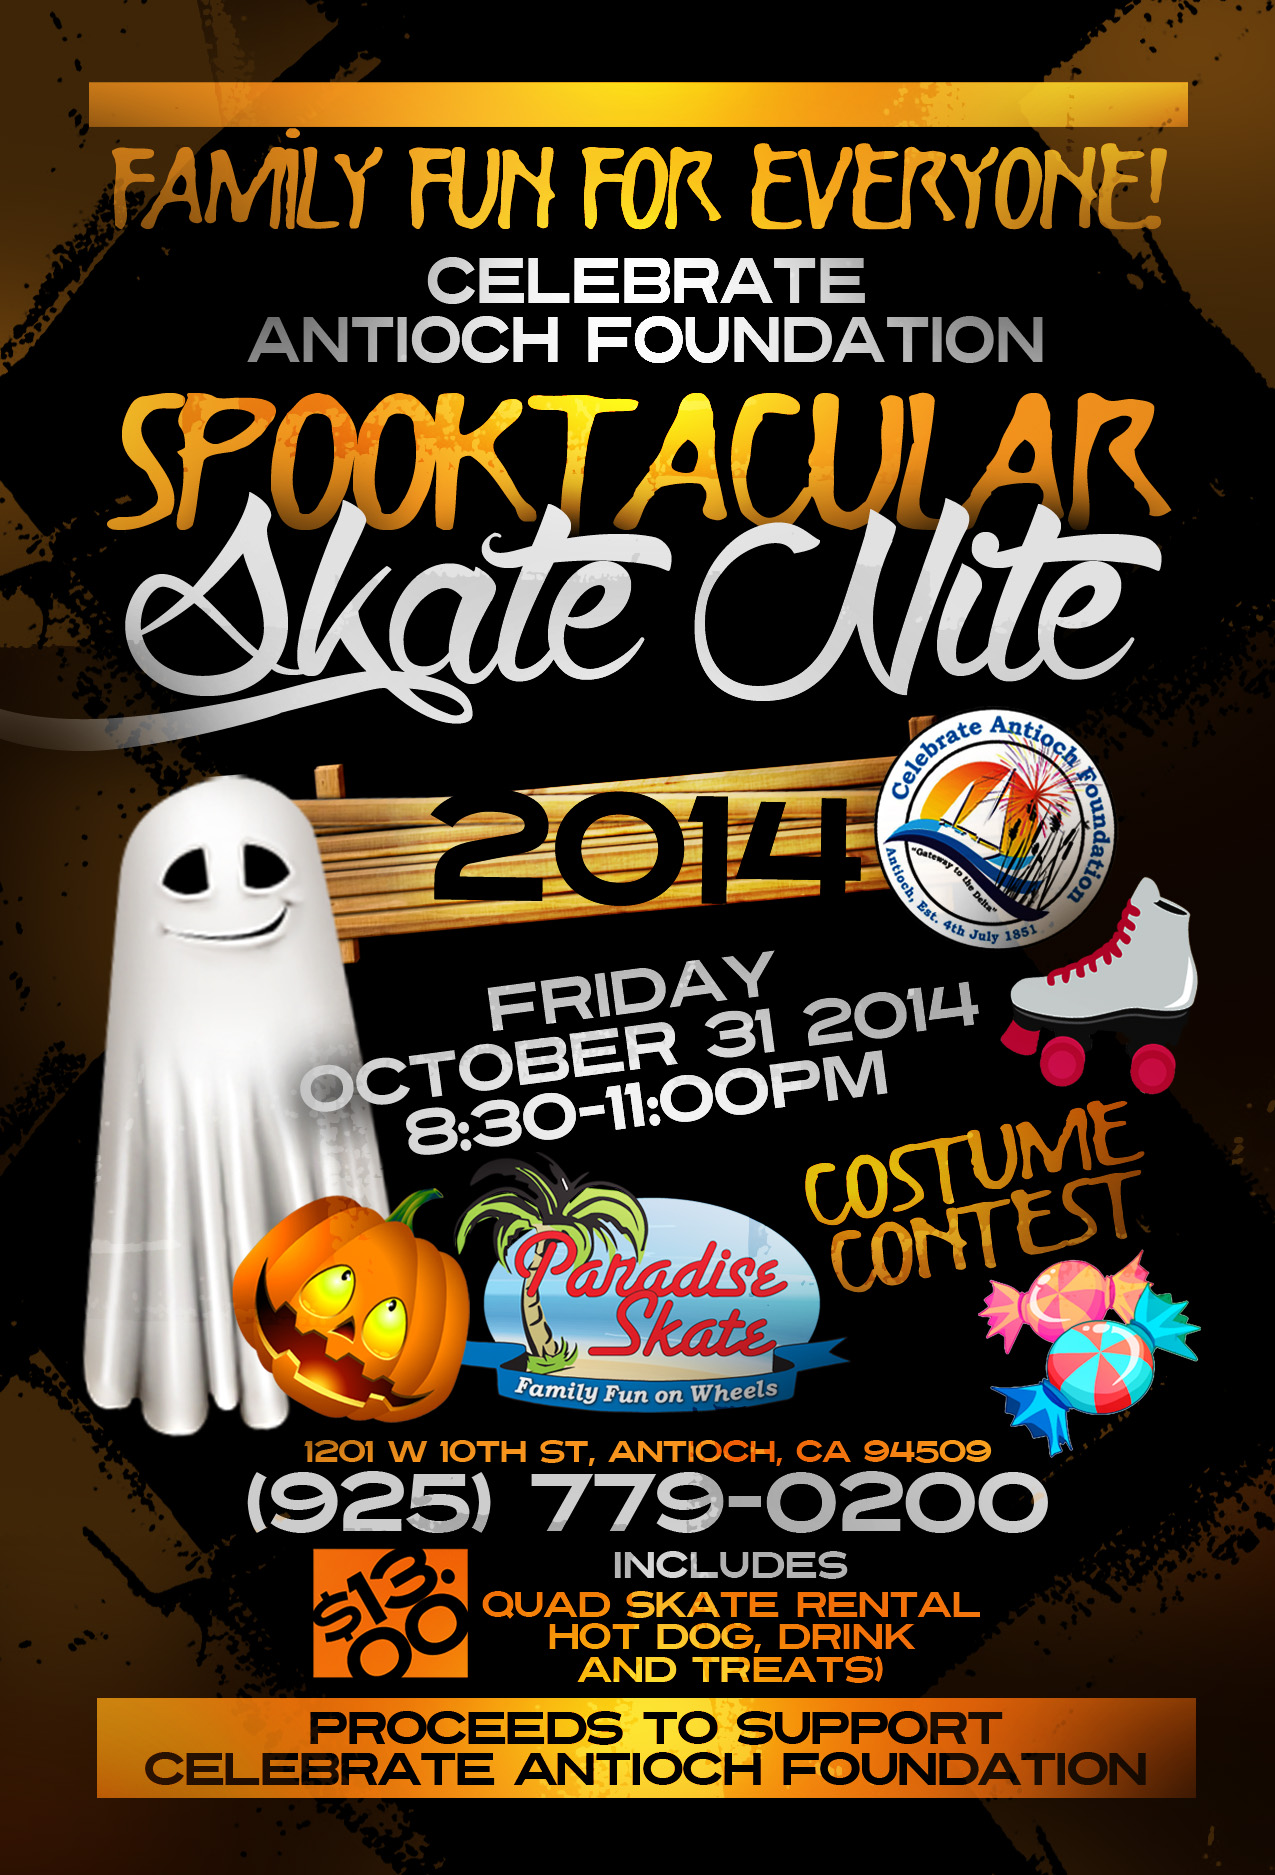 Spooktacular 2014 Velma Wilson Spooktacular Skate Night on Halloween to benefit Celebrate Antioch Foundation